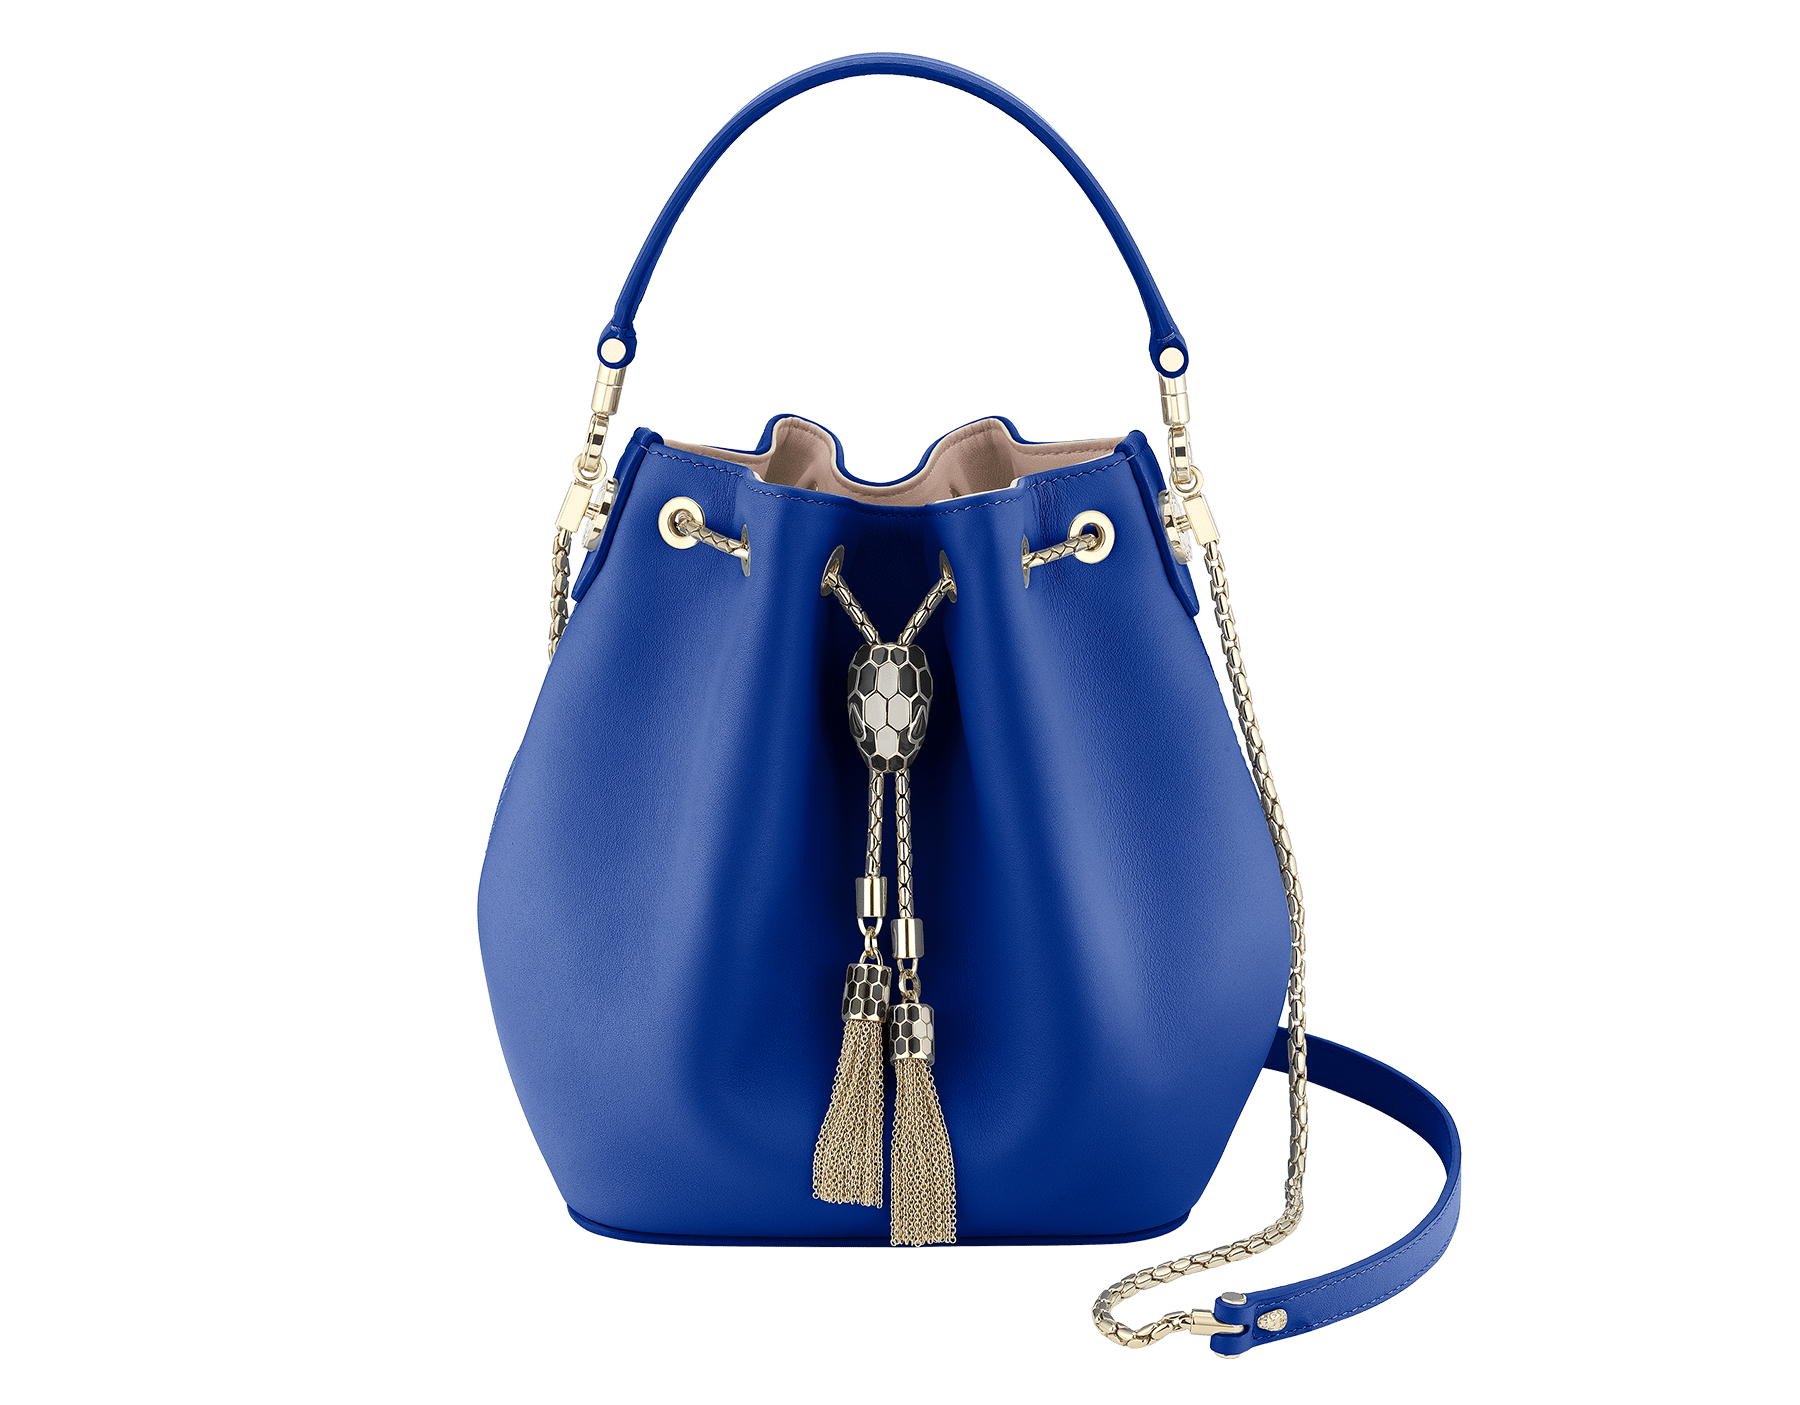 Bucket Serpenti Forever in cobalt tourmaline smooth calf leather and crystal rose nappa internal lining. Hardware in light gold plated brass and snakehead closure in black and white enamel, with eyes in black onyx. 287804 image 1